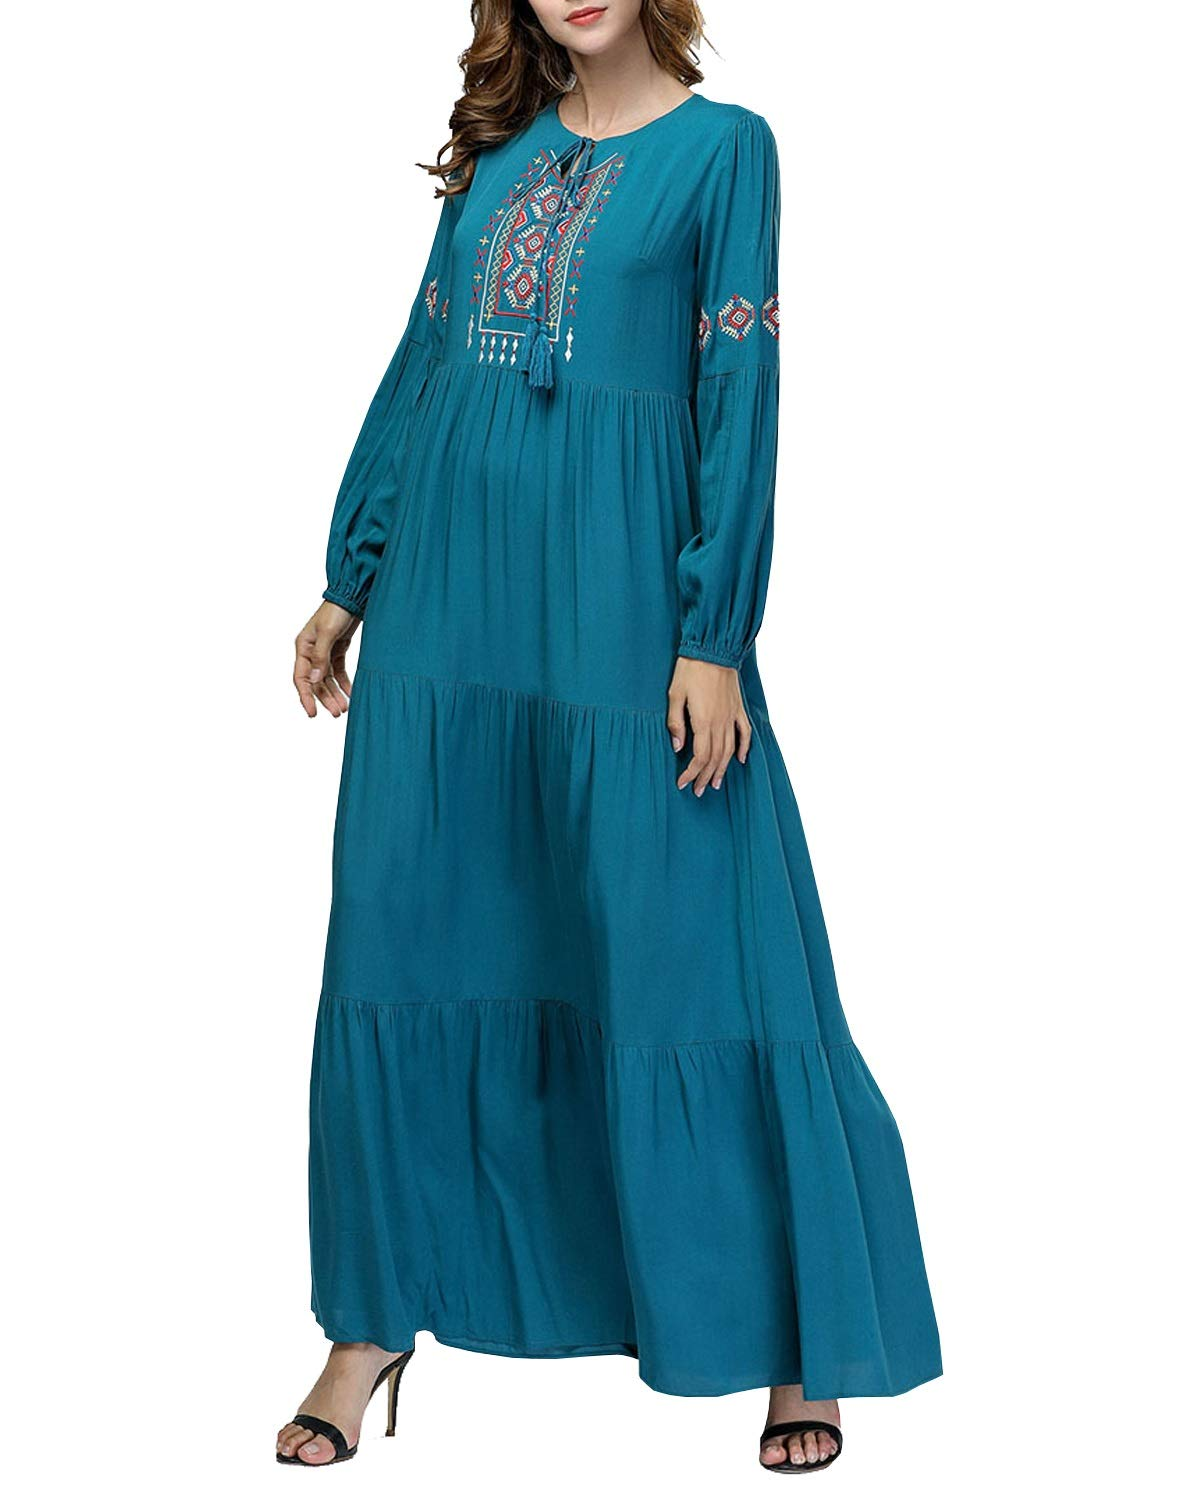 Dark Green Kirabon Women's Casual Long Sleeve Embroidered Maxi Dress